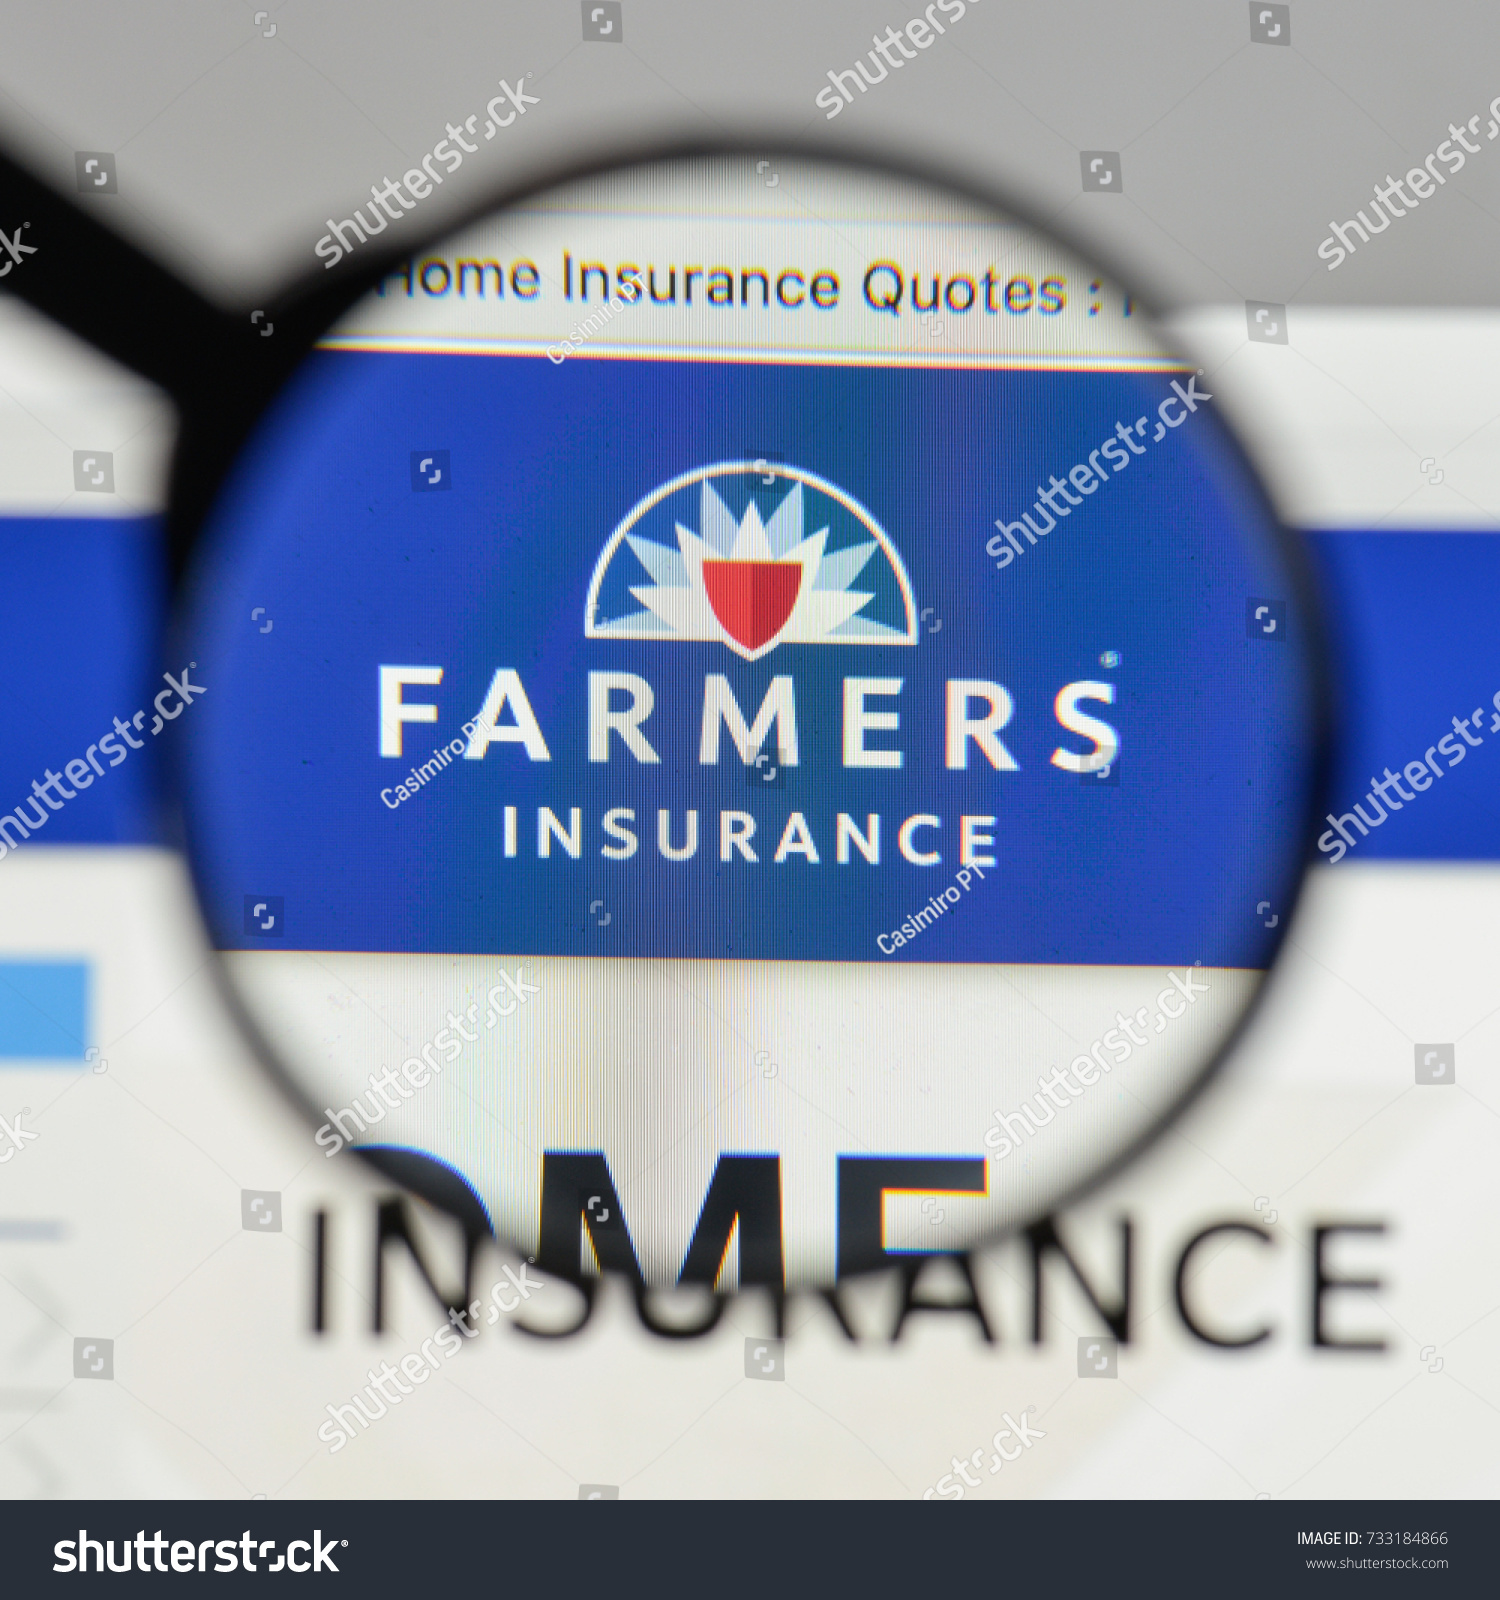 Farmers Insurance Quote Milan Italy August 10 2017 Farmers Stock Photo 733184866